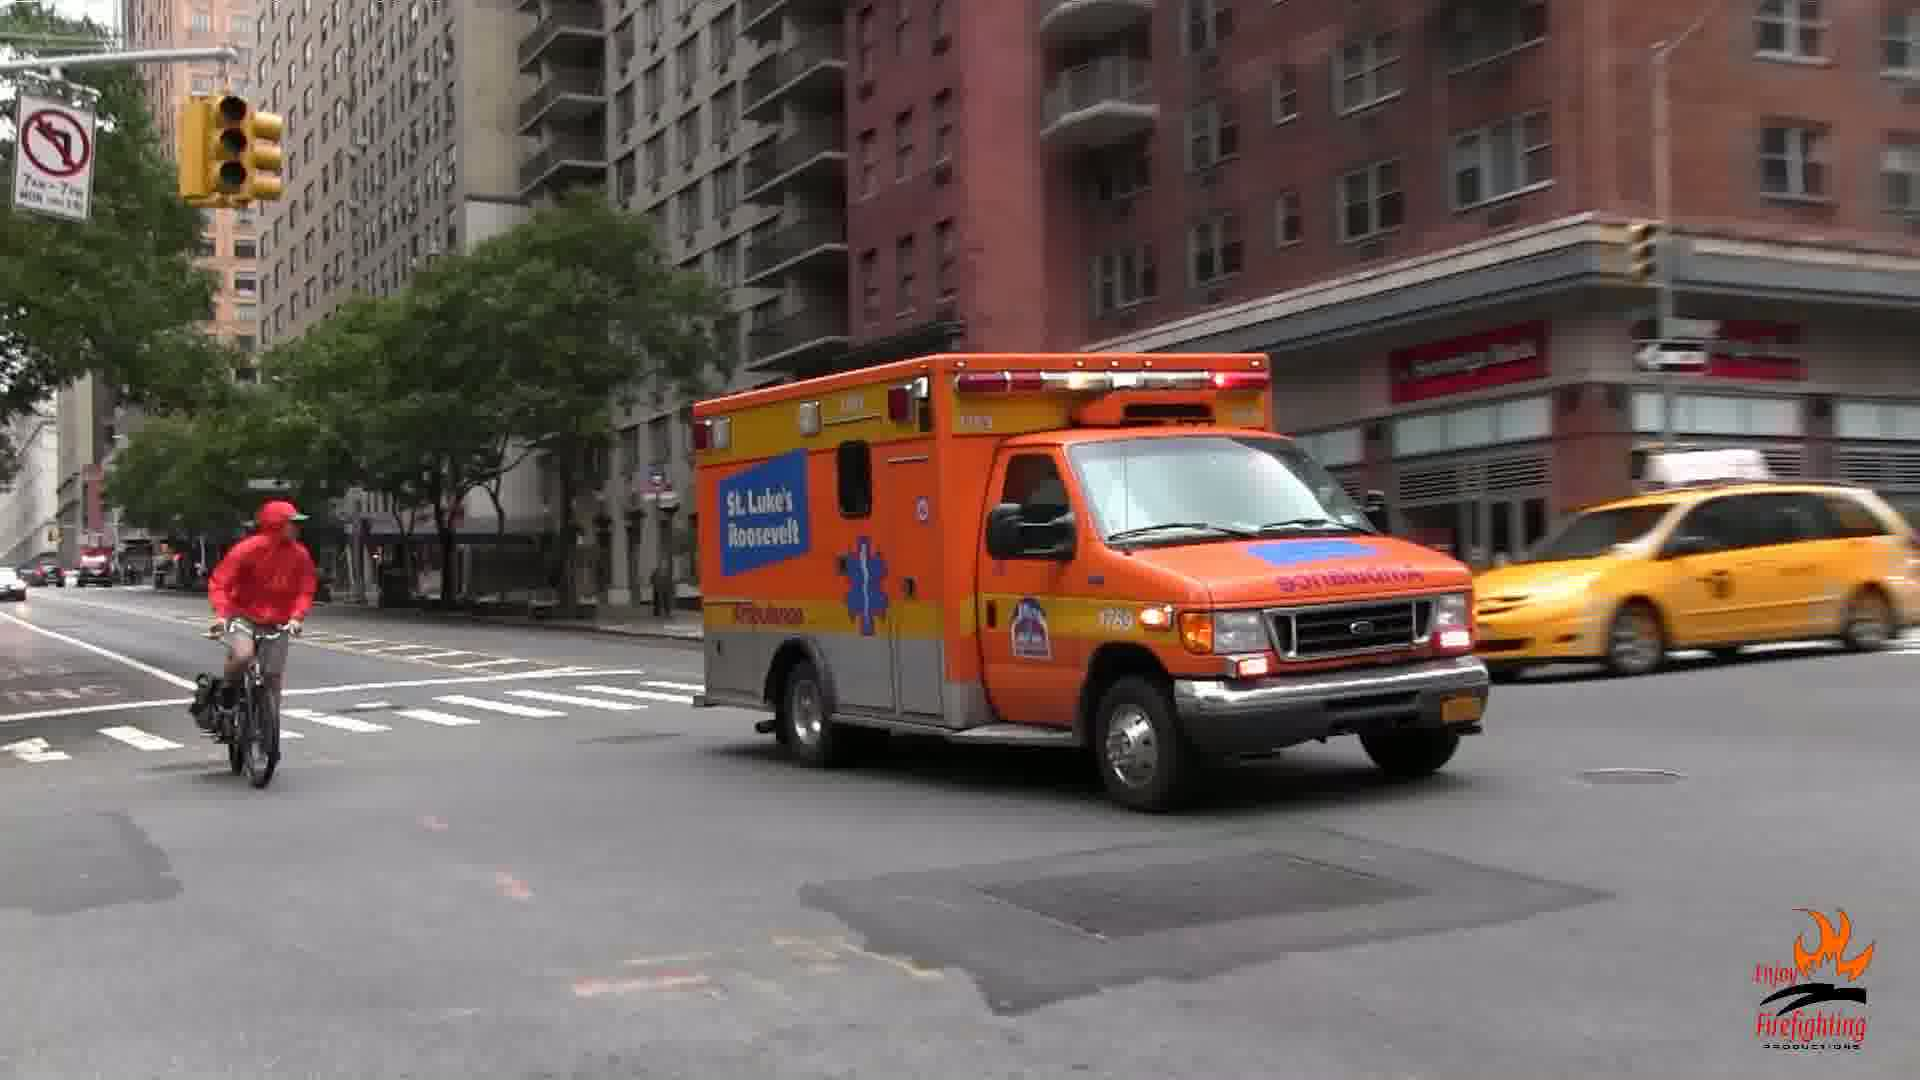 Ambulance 1769 St. Luke's Roosevelt Hospital